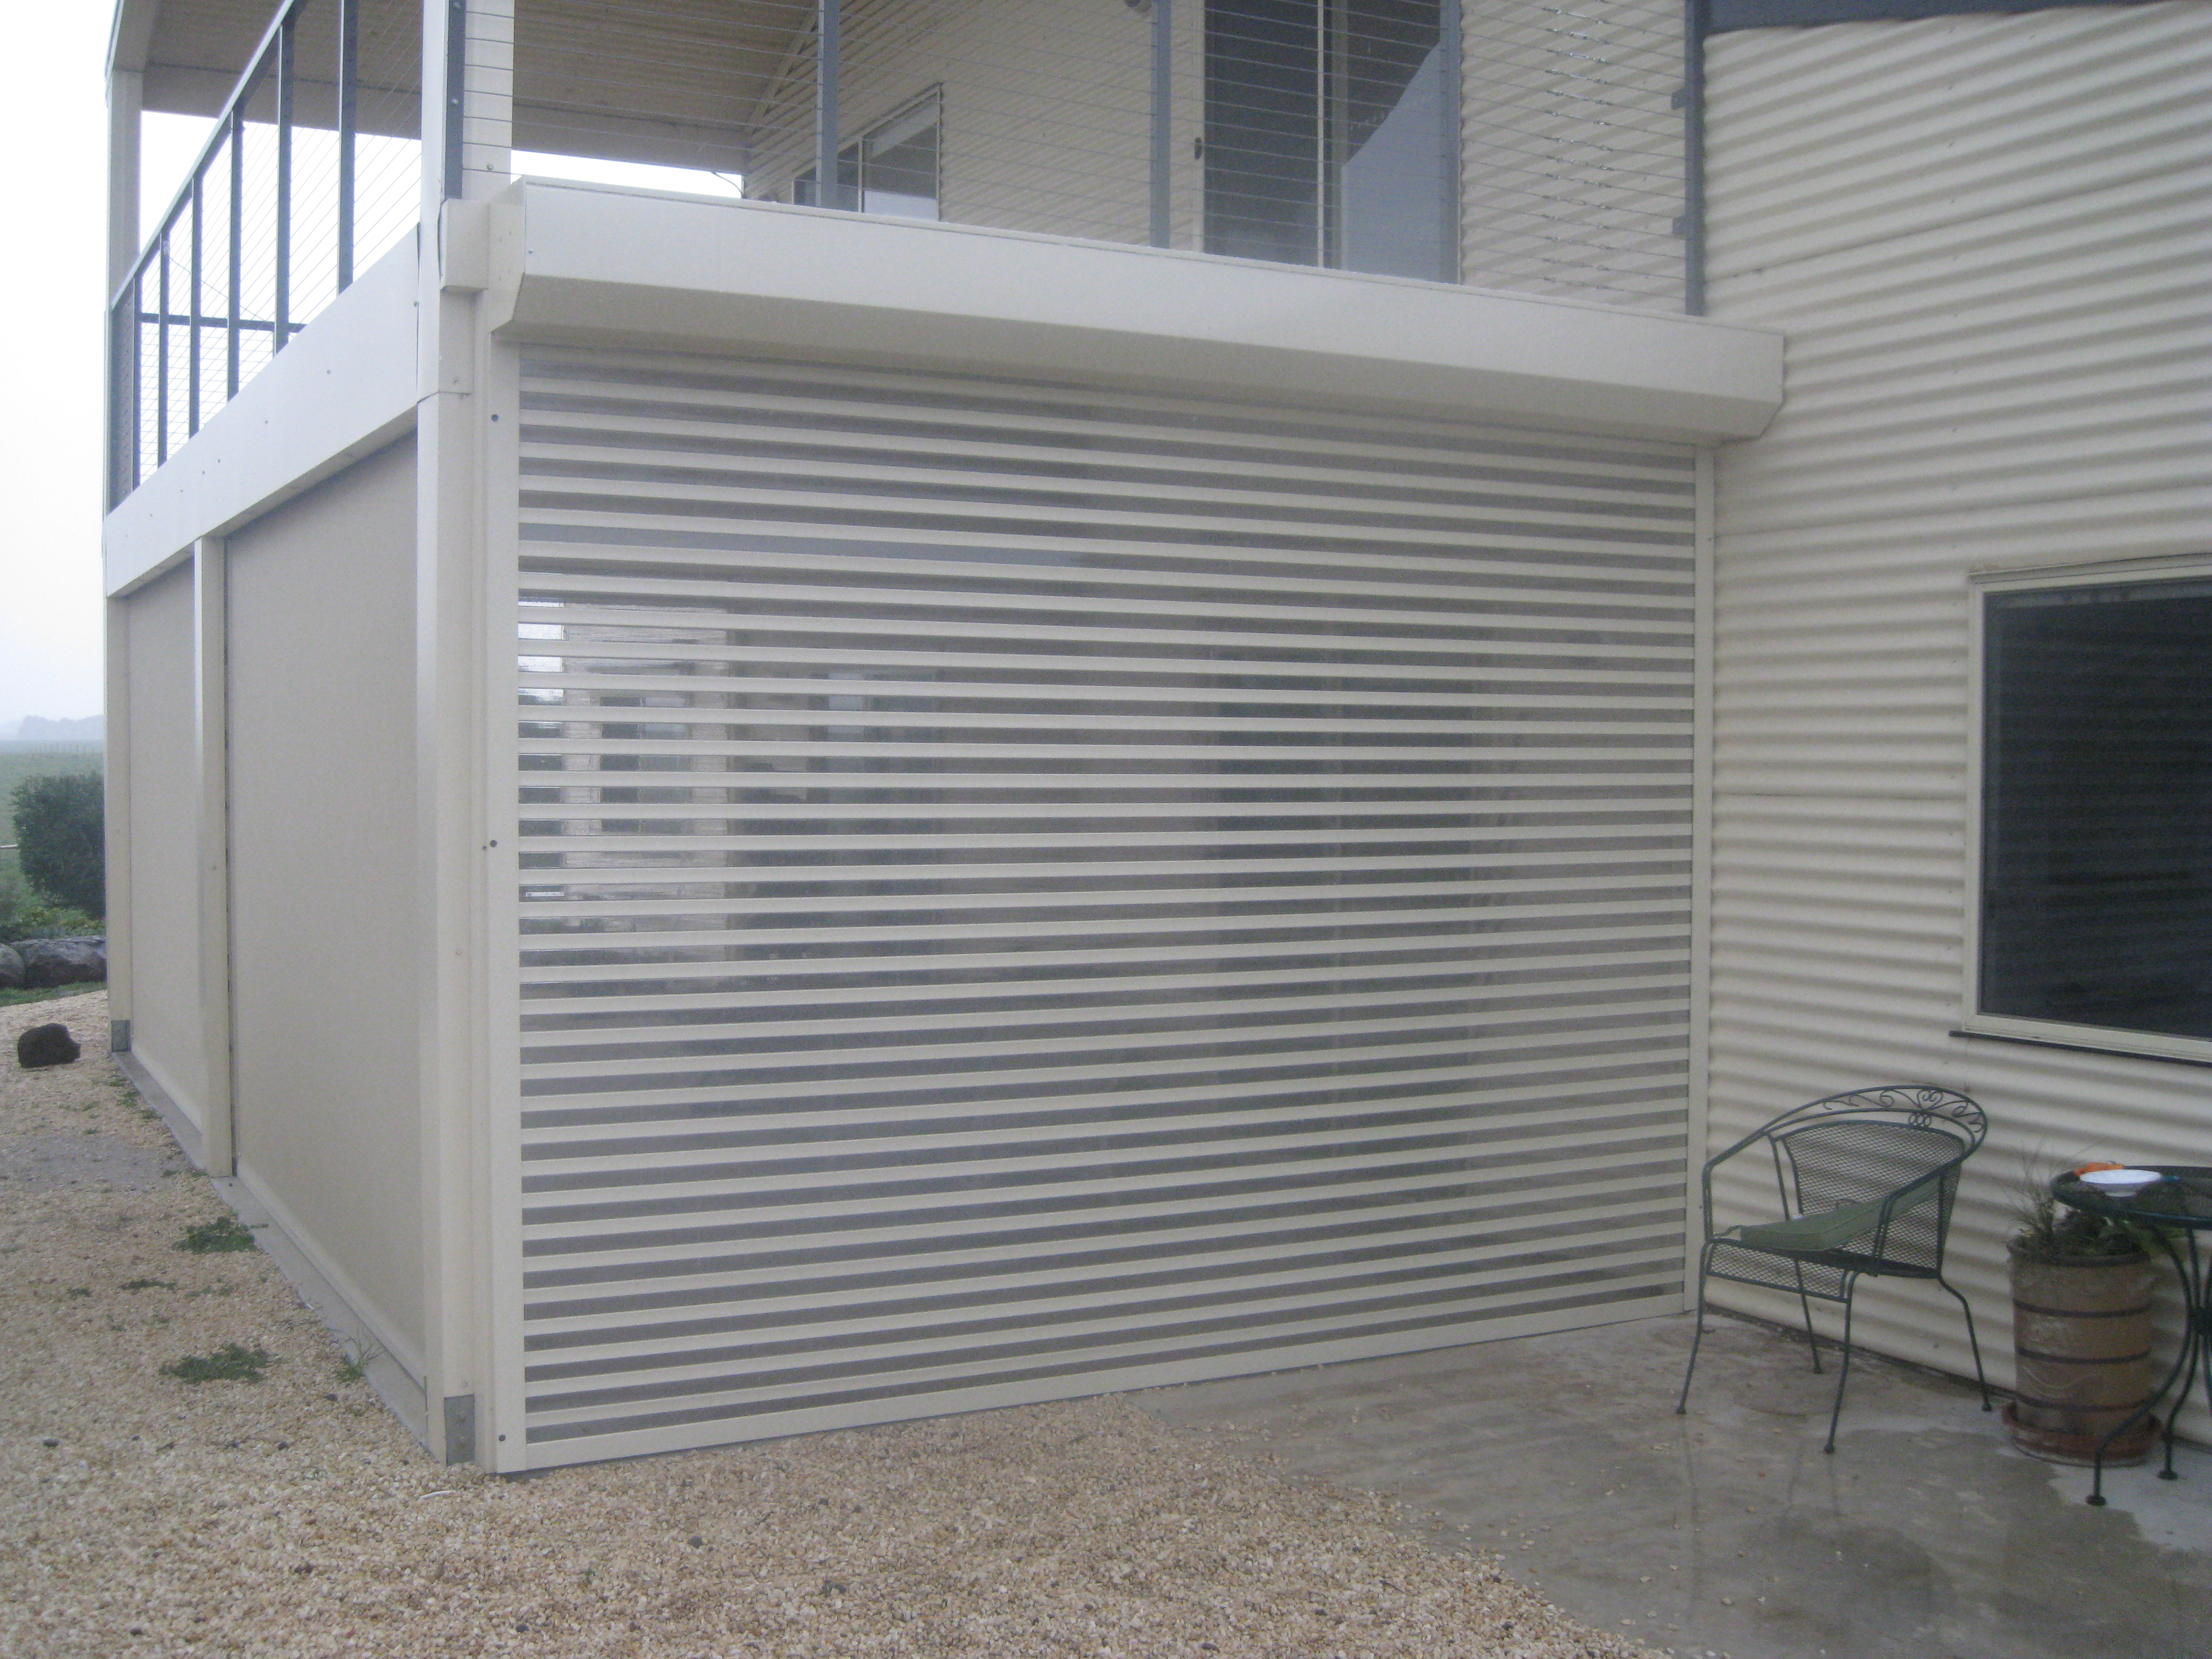 a great bambooblinds blind is the awesome blinds best designs motorised of club from outdoor roller sheerweave